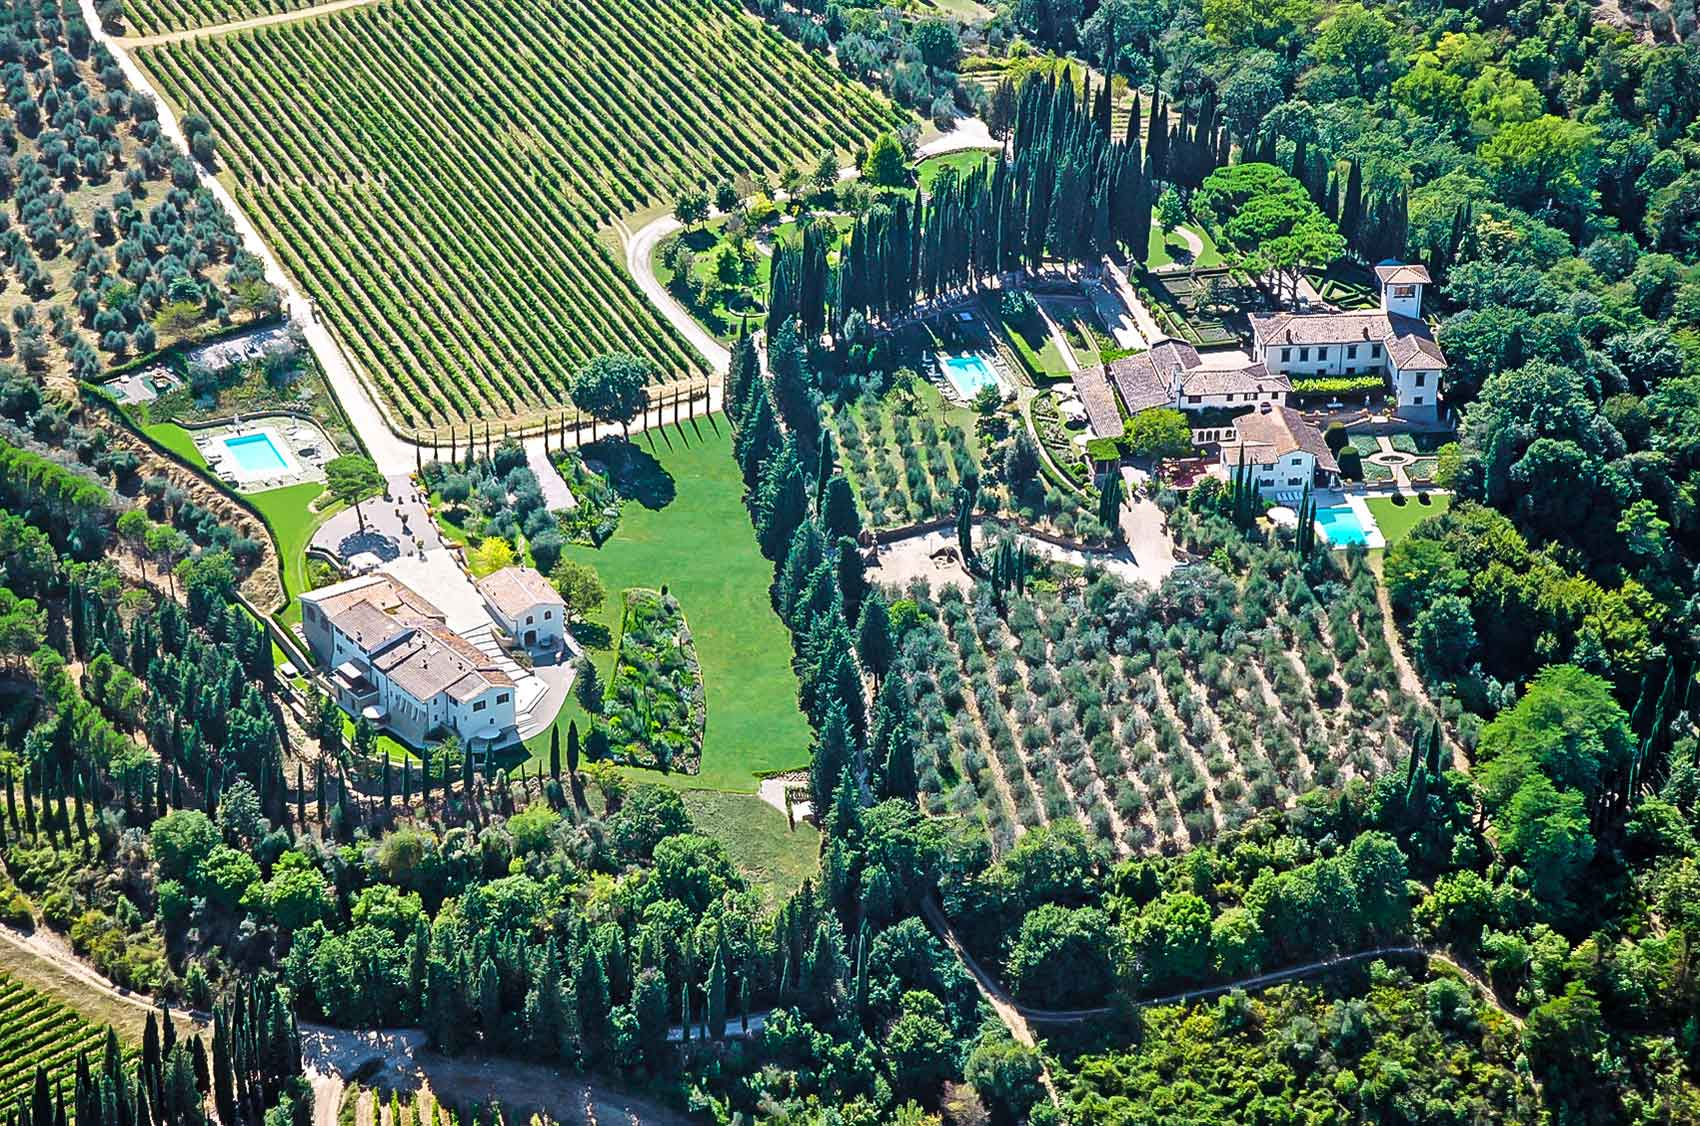 Bounded by cypresses, vineyards, olive groves, and ancient forests, this historic estate overlooks the Chianti Classico hills, in the heart of the Tuscan countryside.